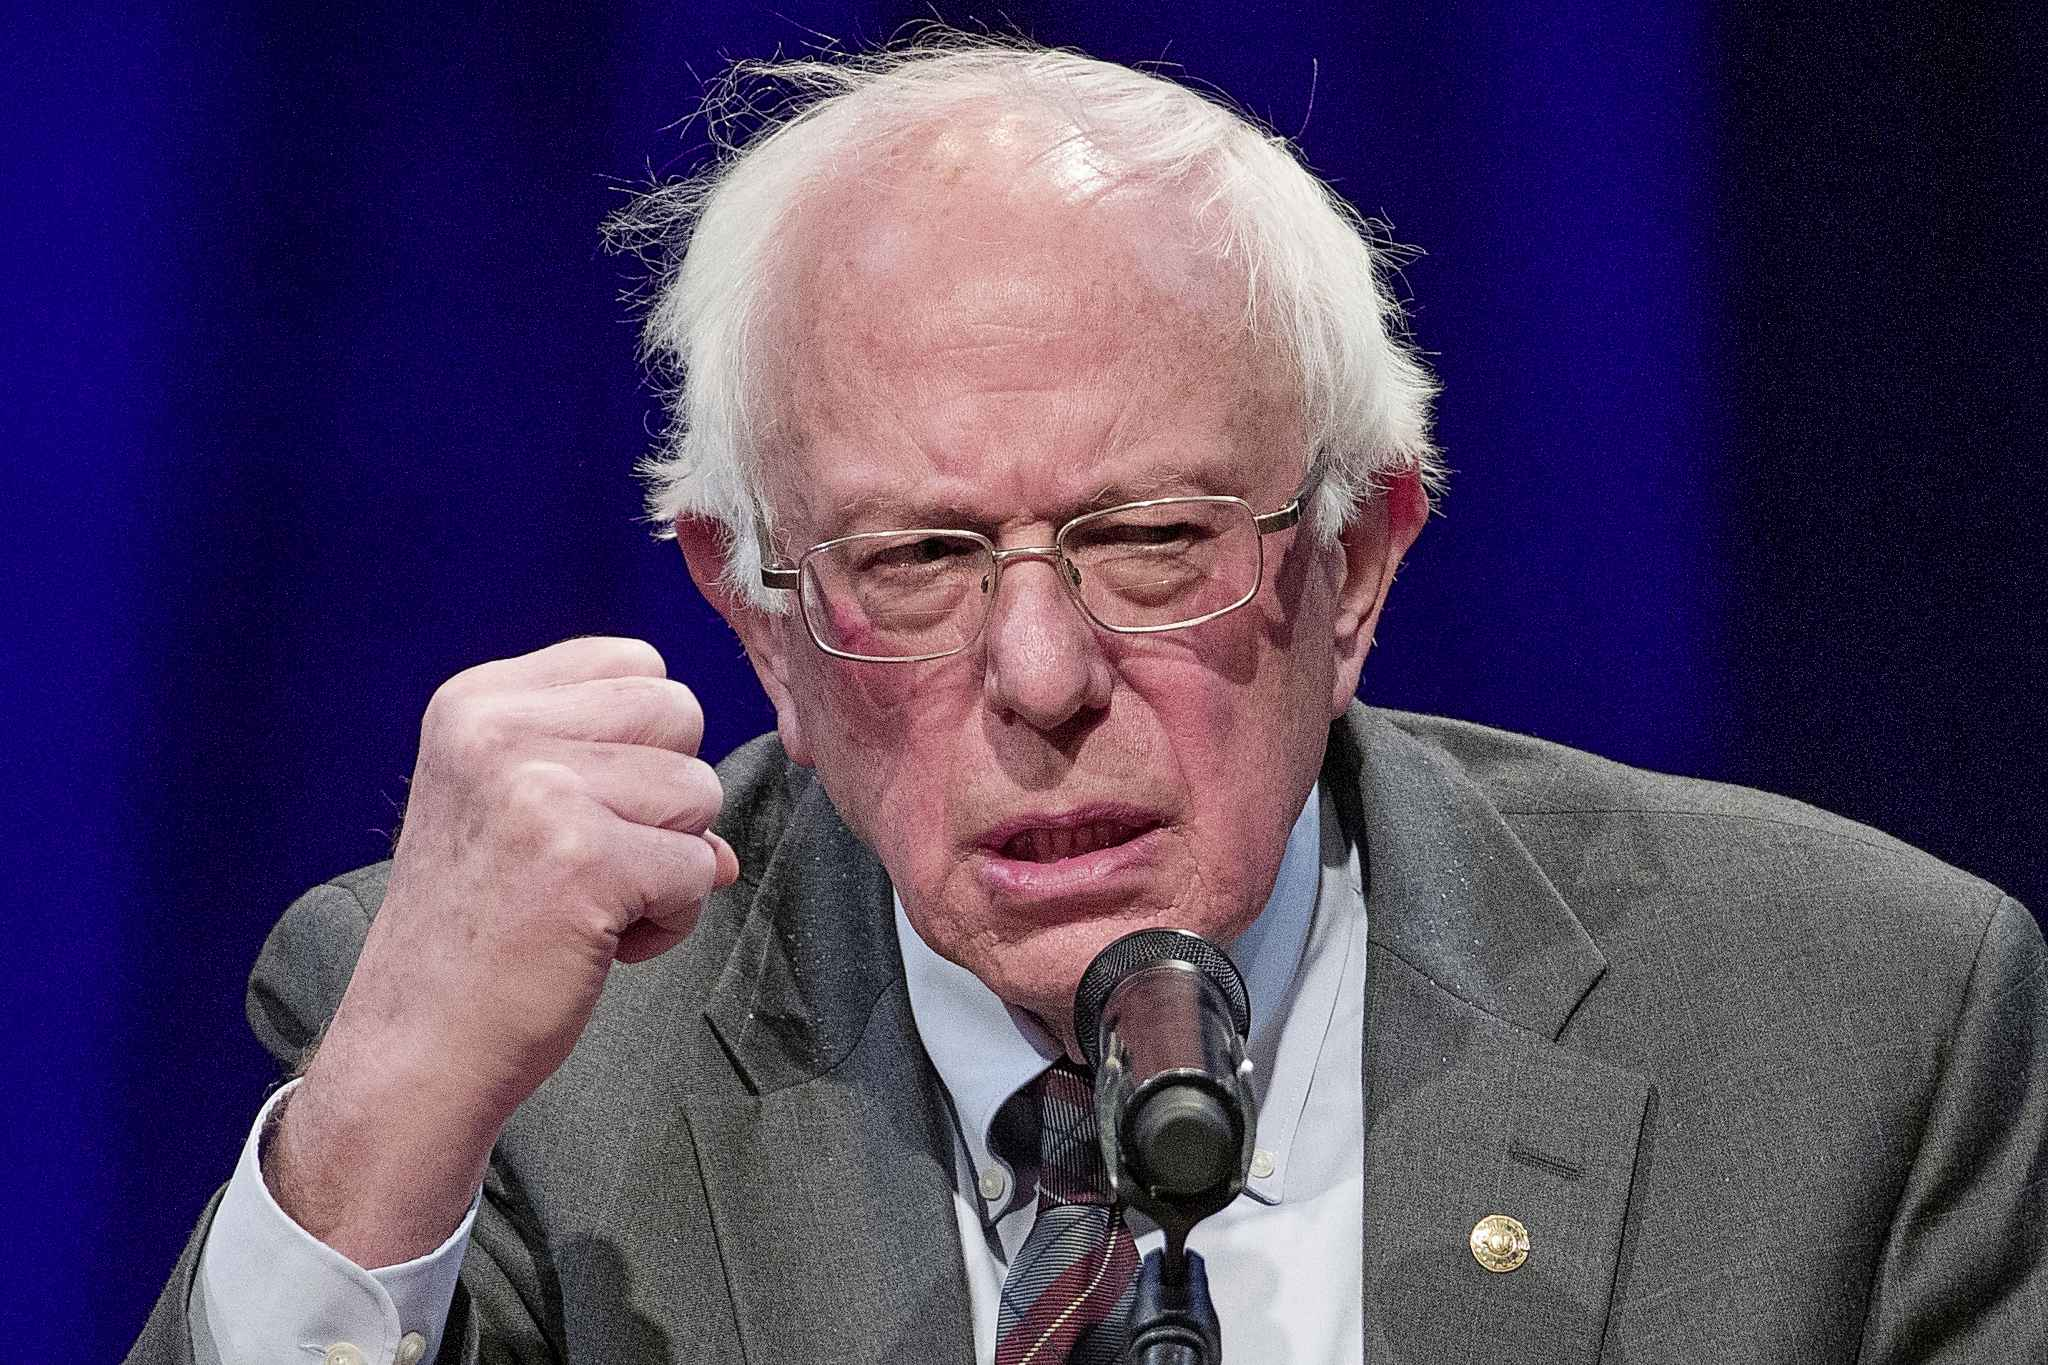 The Sanders campaign says it raised US$6 million in donations within 24 hours of his declared candidacy